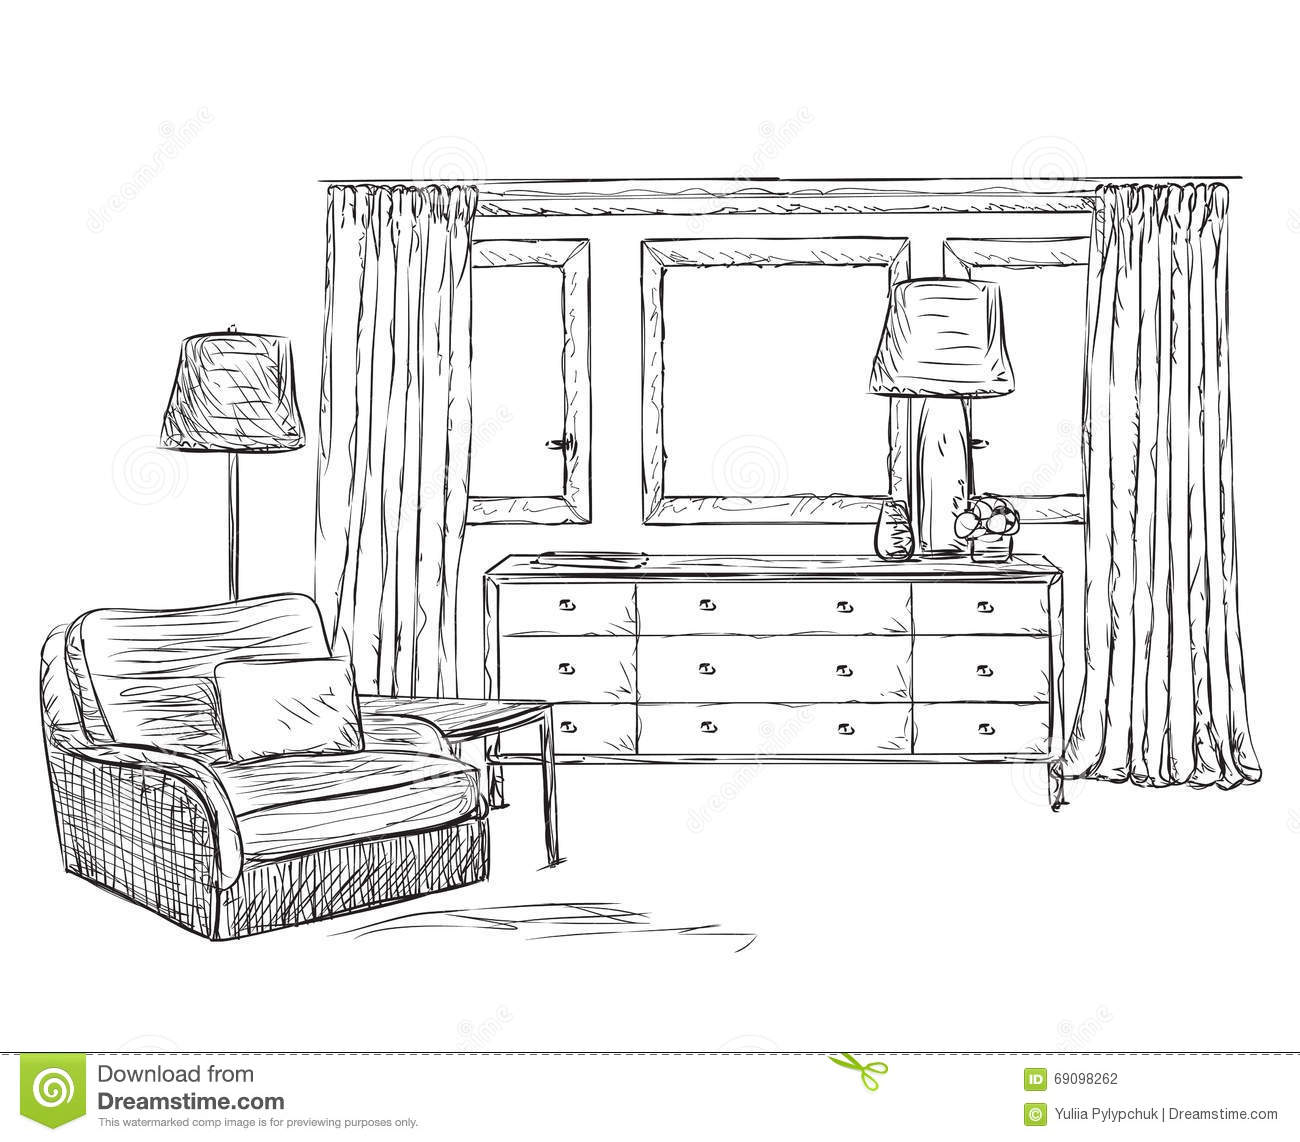 drawn furniture hand interior room sketch ...